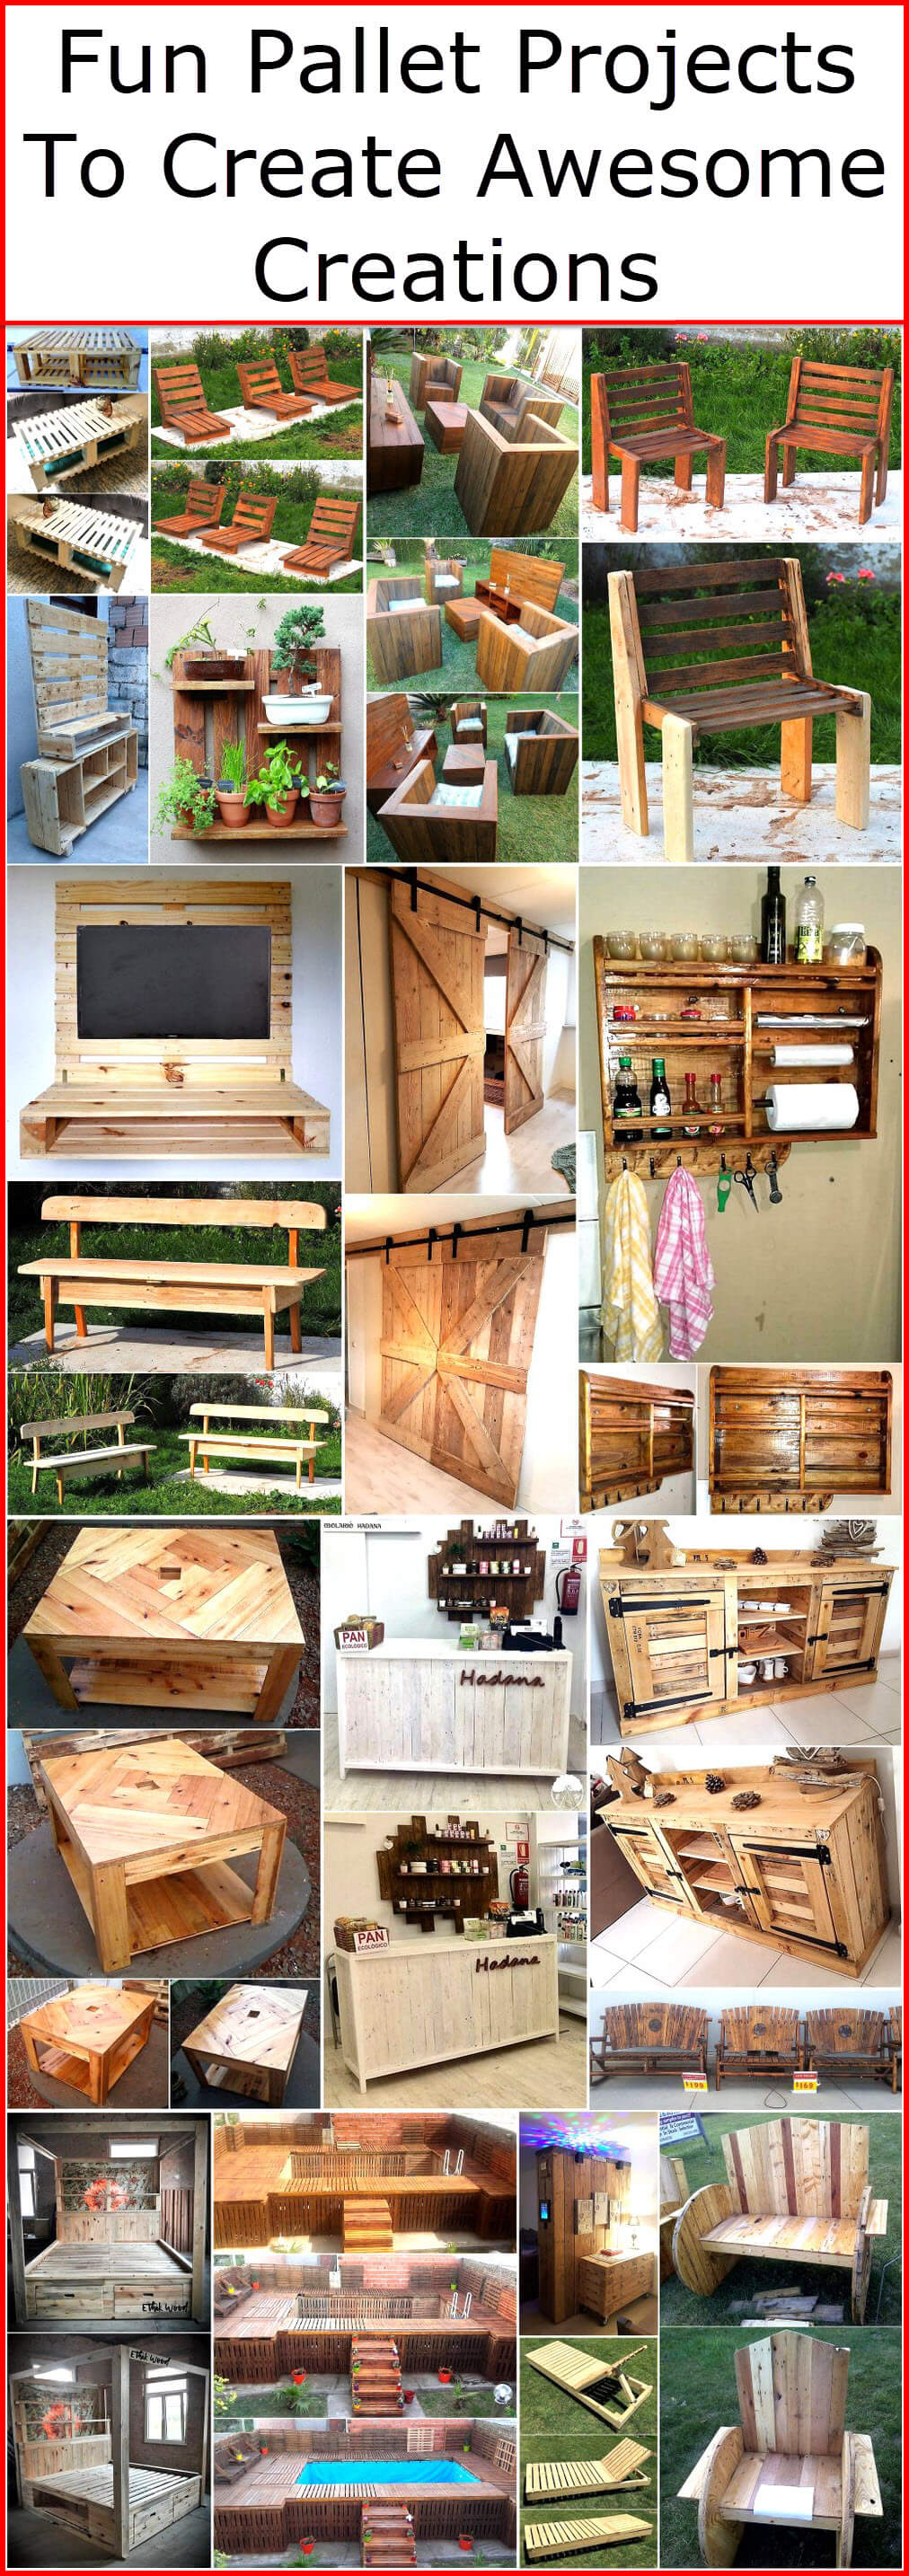 Fun Pallet Projects To Creative Awesome Creations